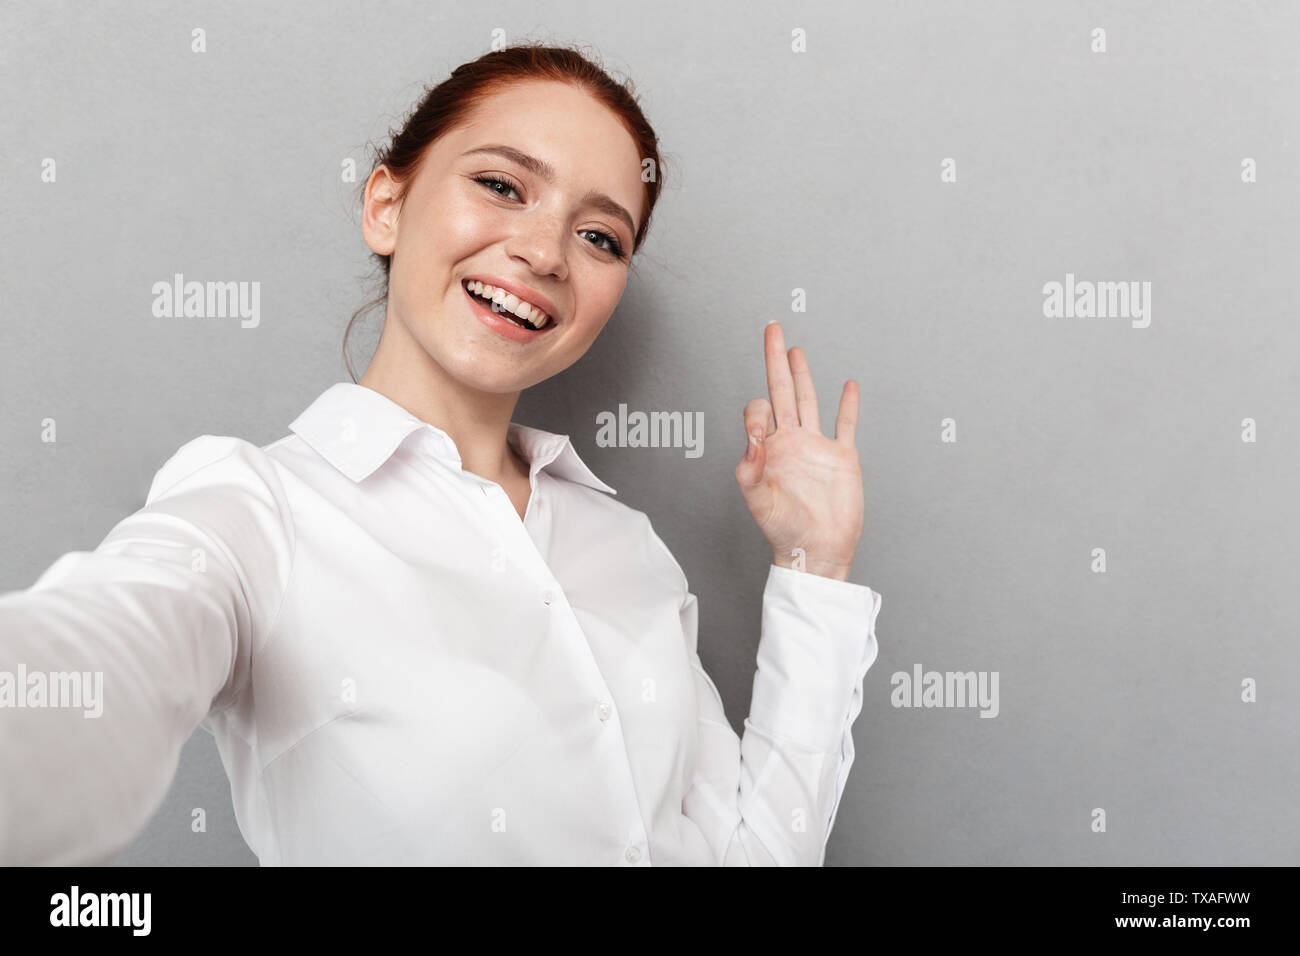 Image of caucasian redhead businesswoman 20s in formal wear smiling at camera while taking selfie photo isolated over gray background - Stock Image